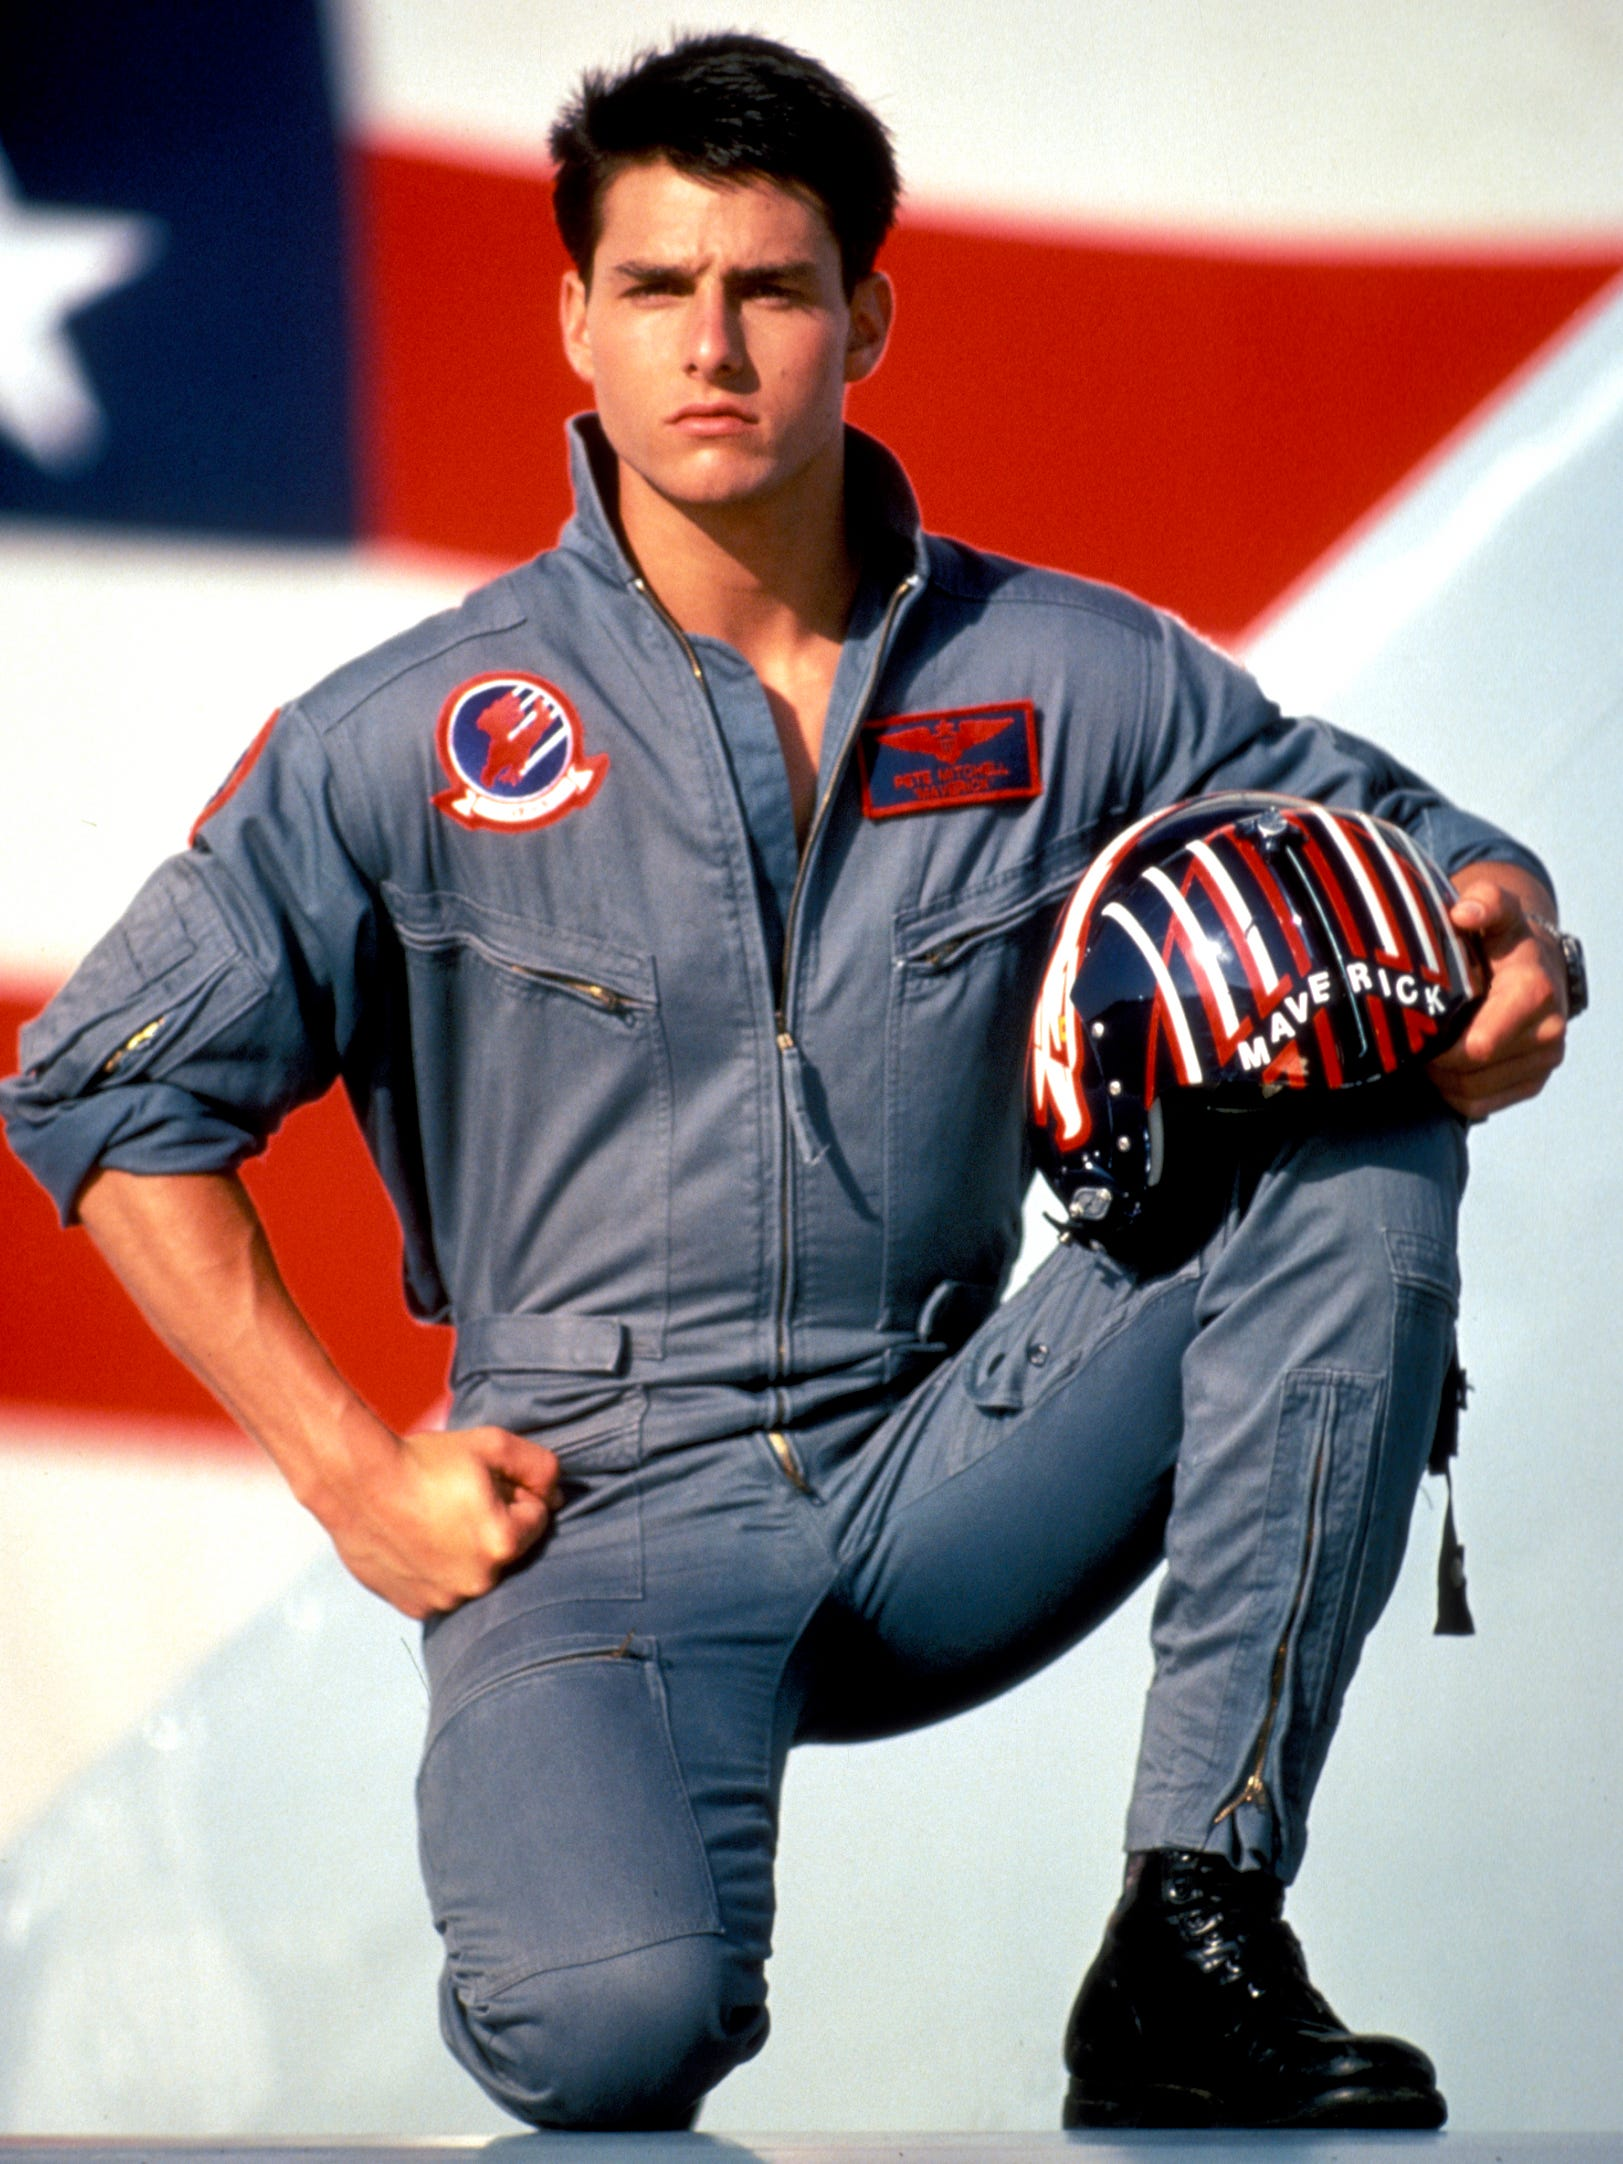 u0026 39 top gun u0026 39  sequel  u0026 39 maverick u0026 39  delayed one year  now due out